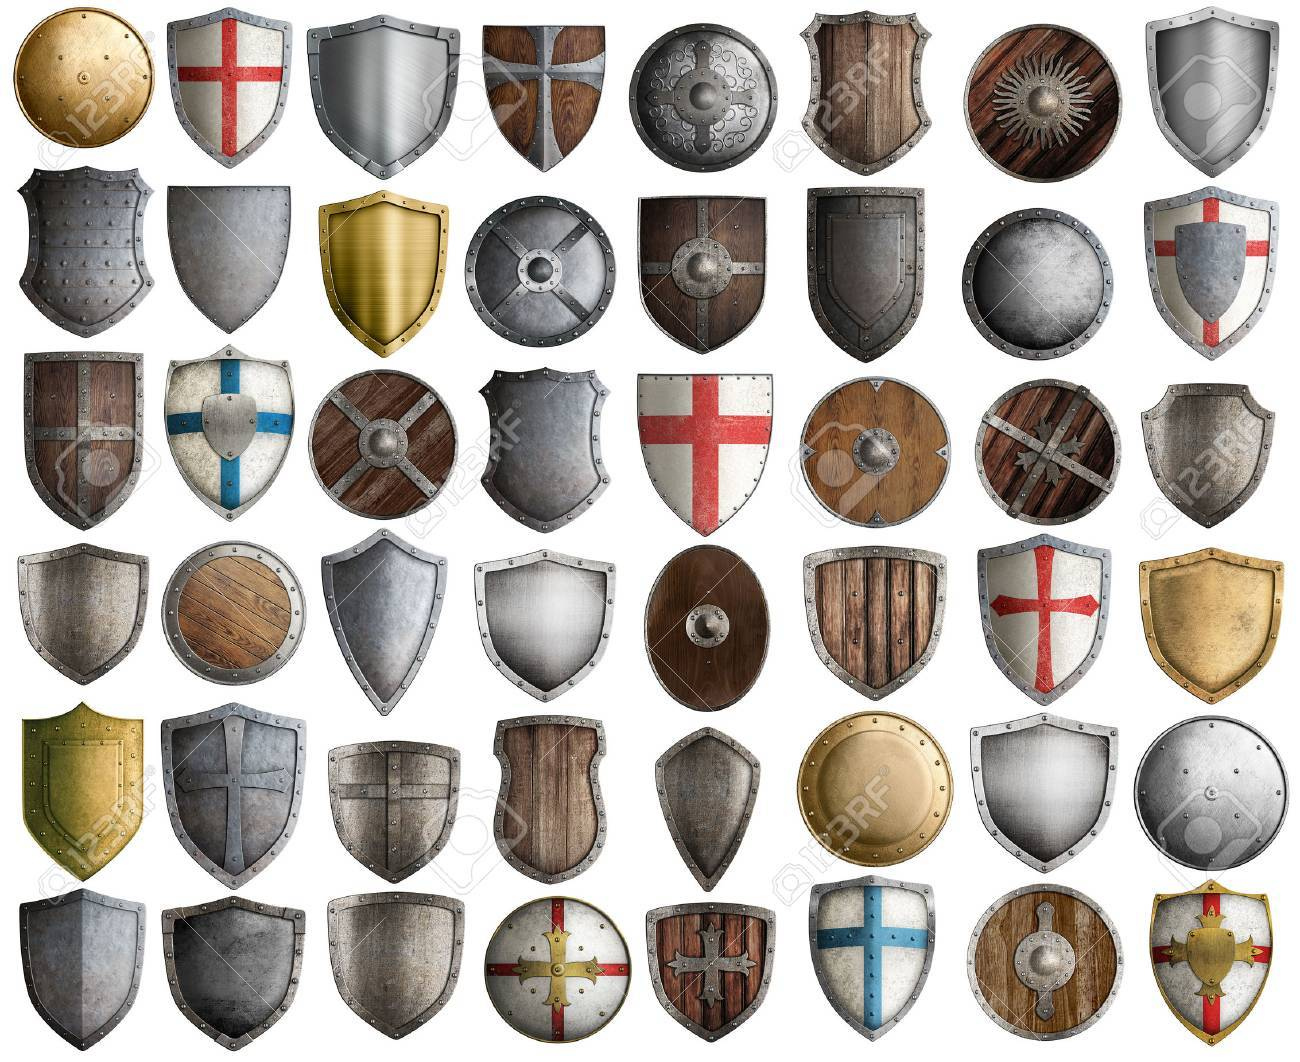 medieval knight shields big set 3d illustration isolated on white - 56494760